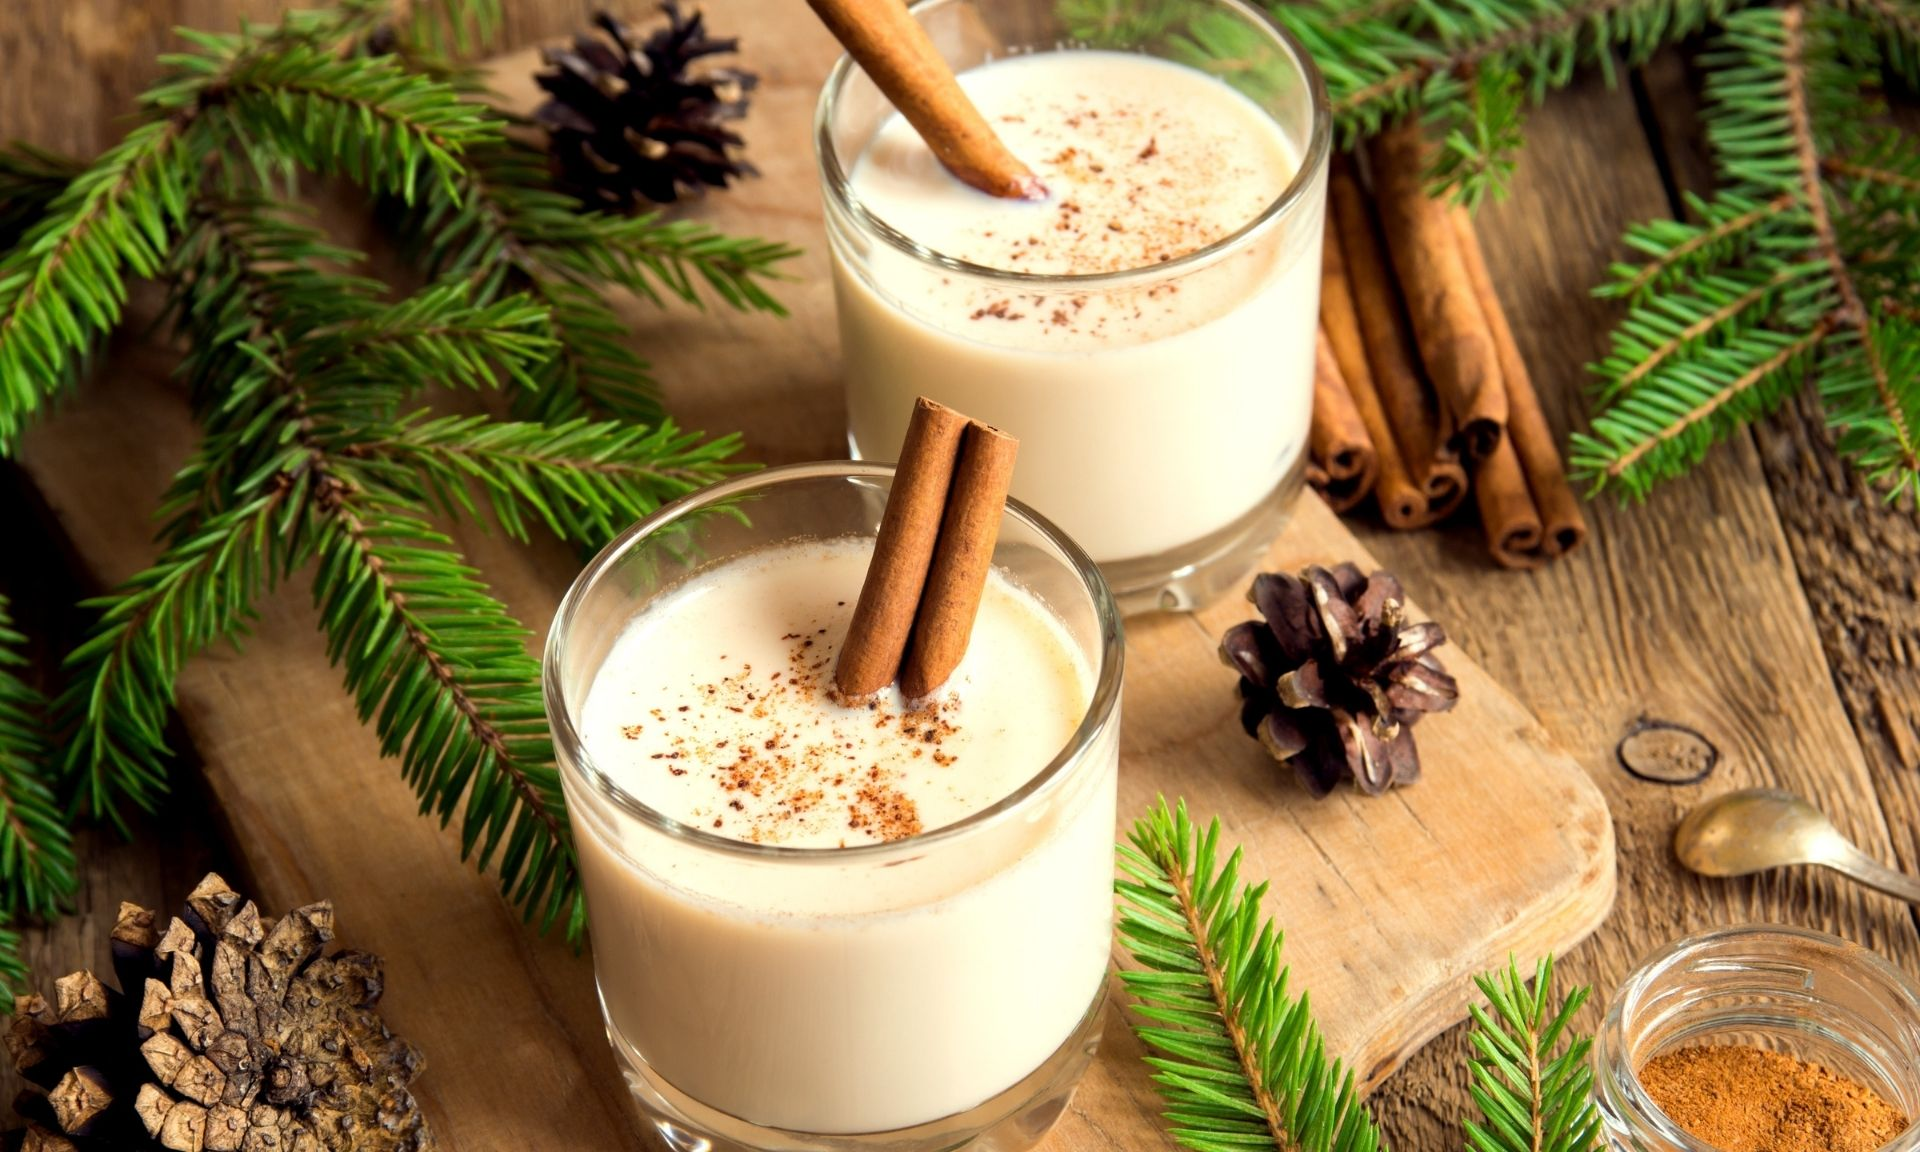 cbd eggnog recipe, image of prepared drink